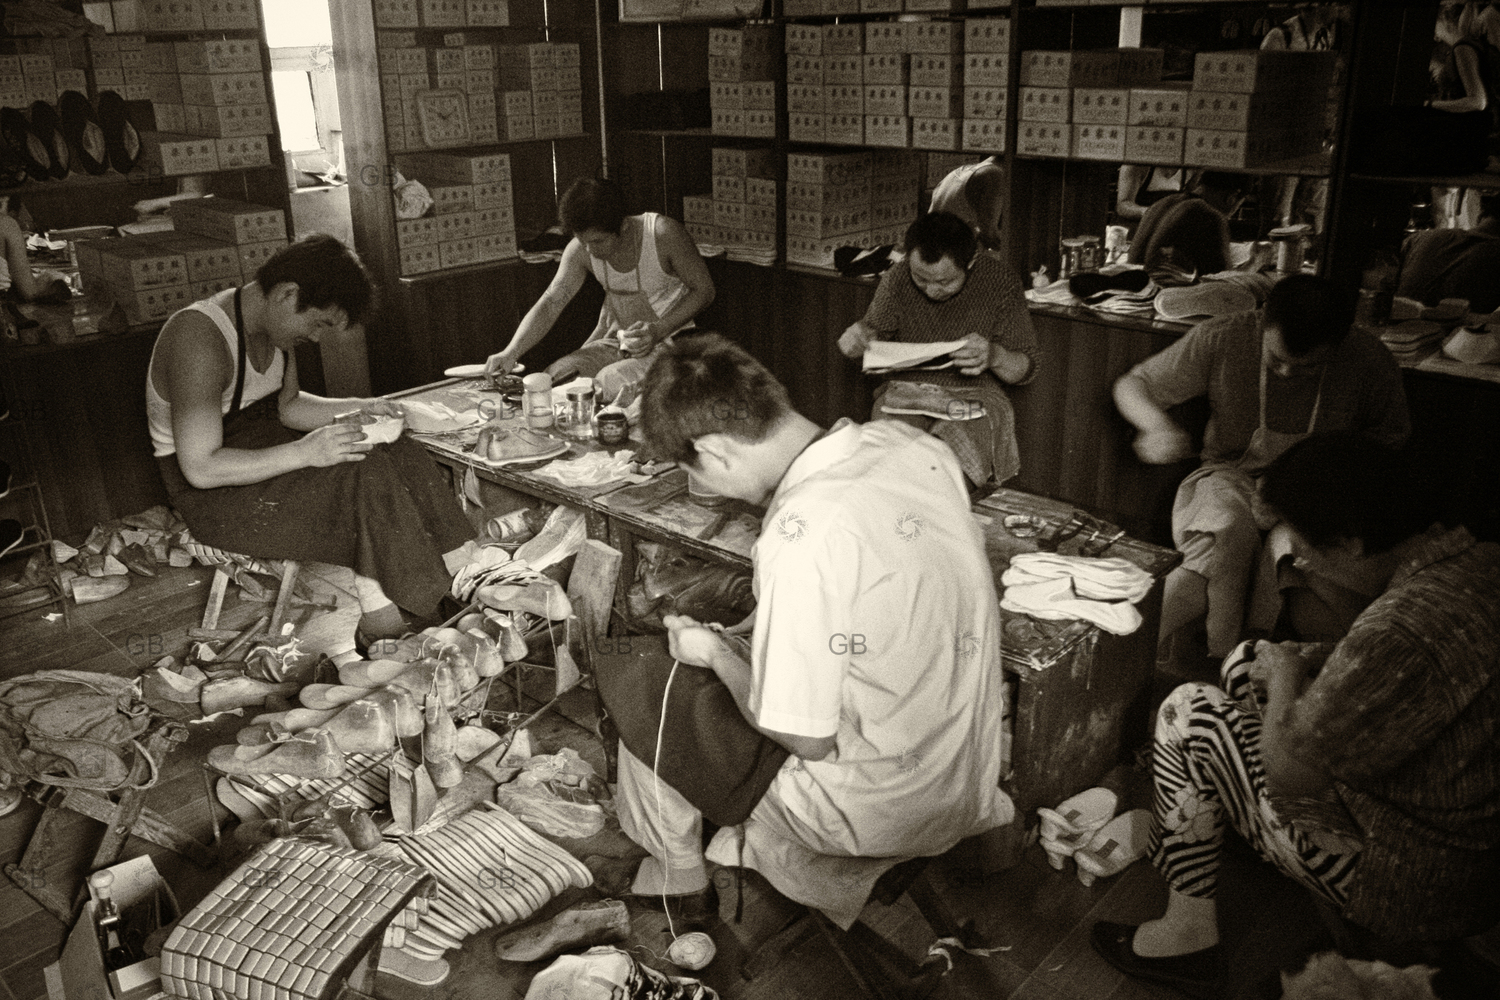 Worker making shoes in China